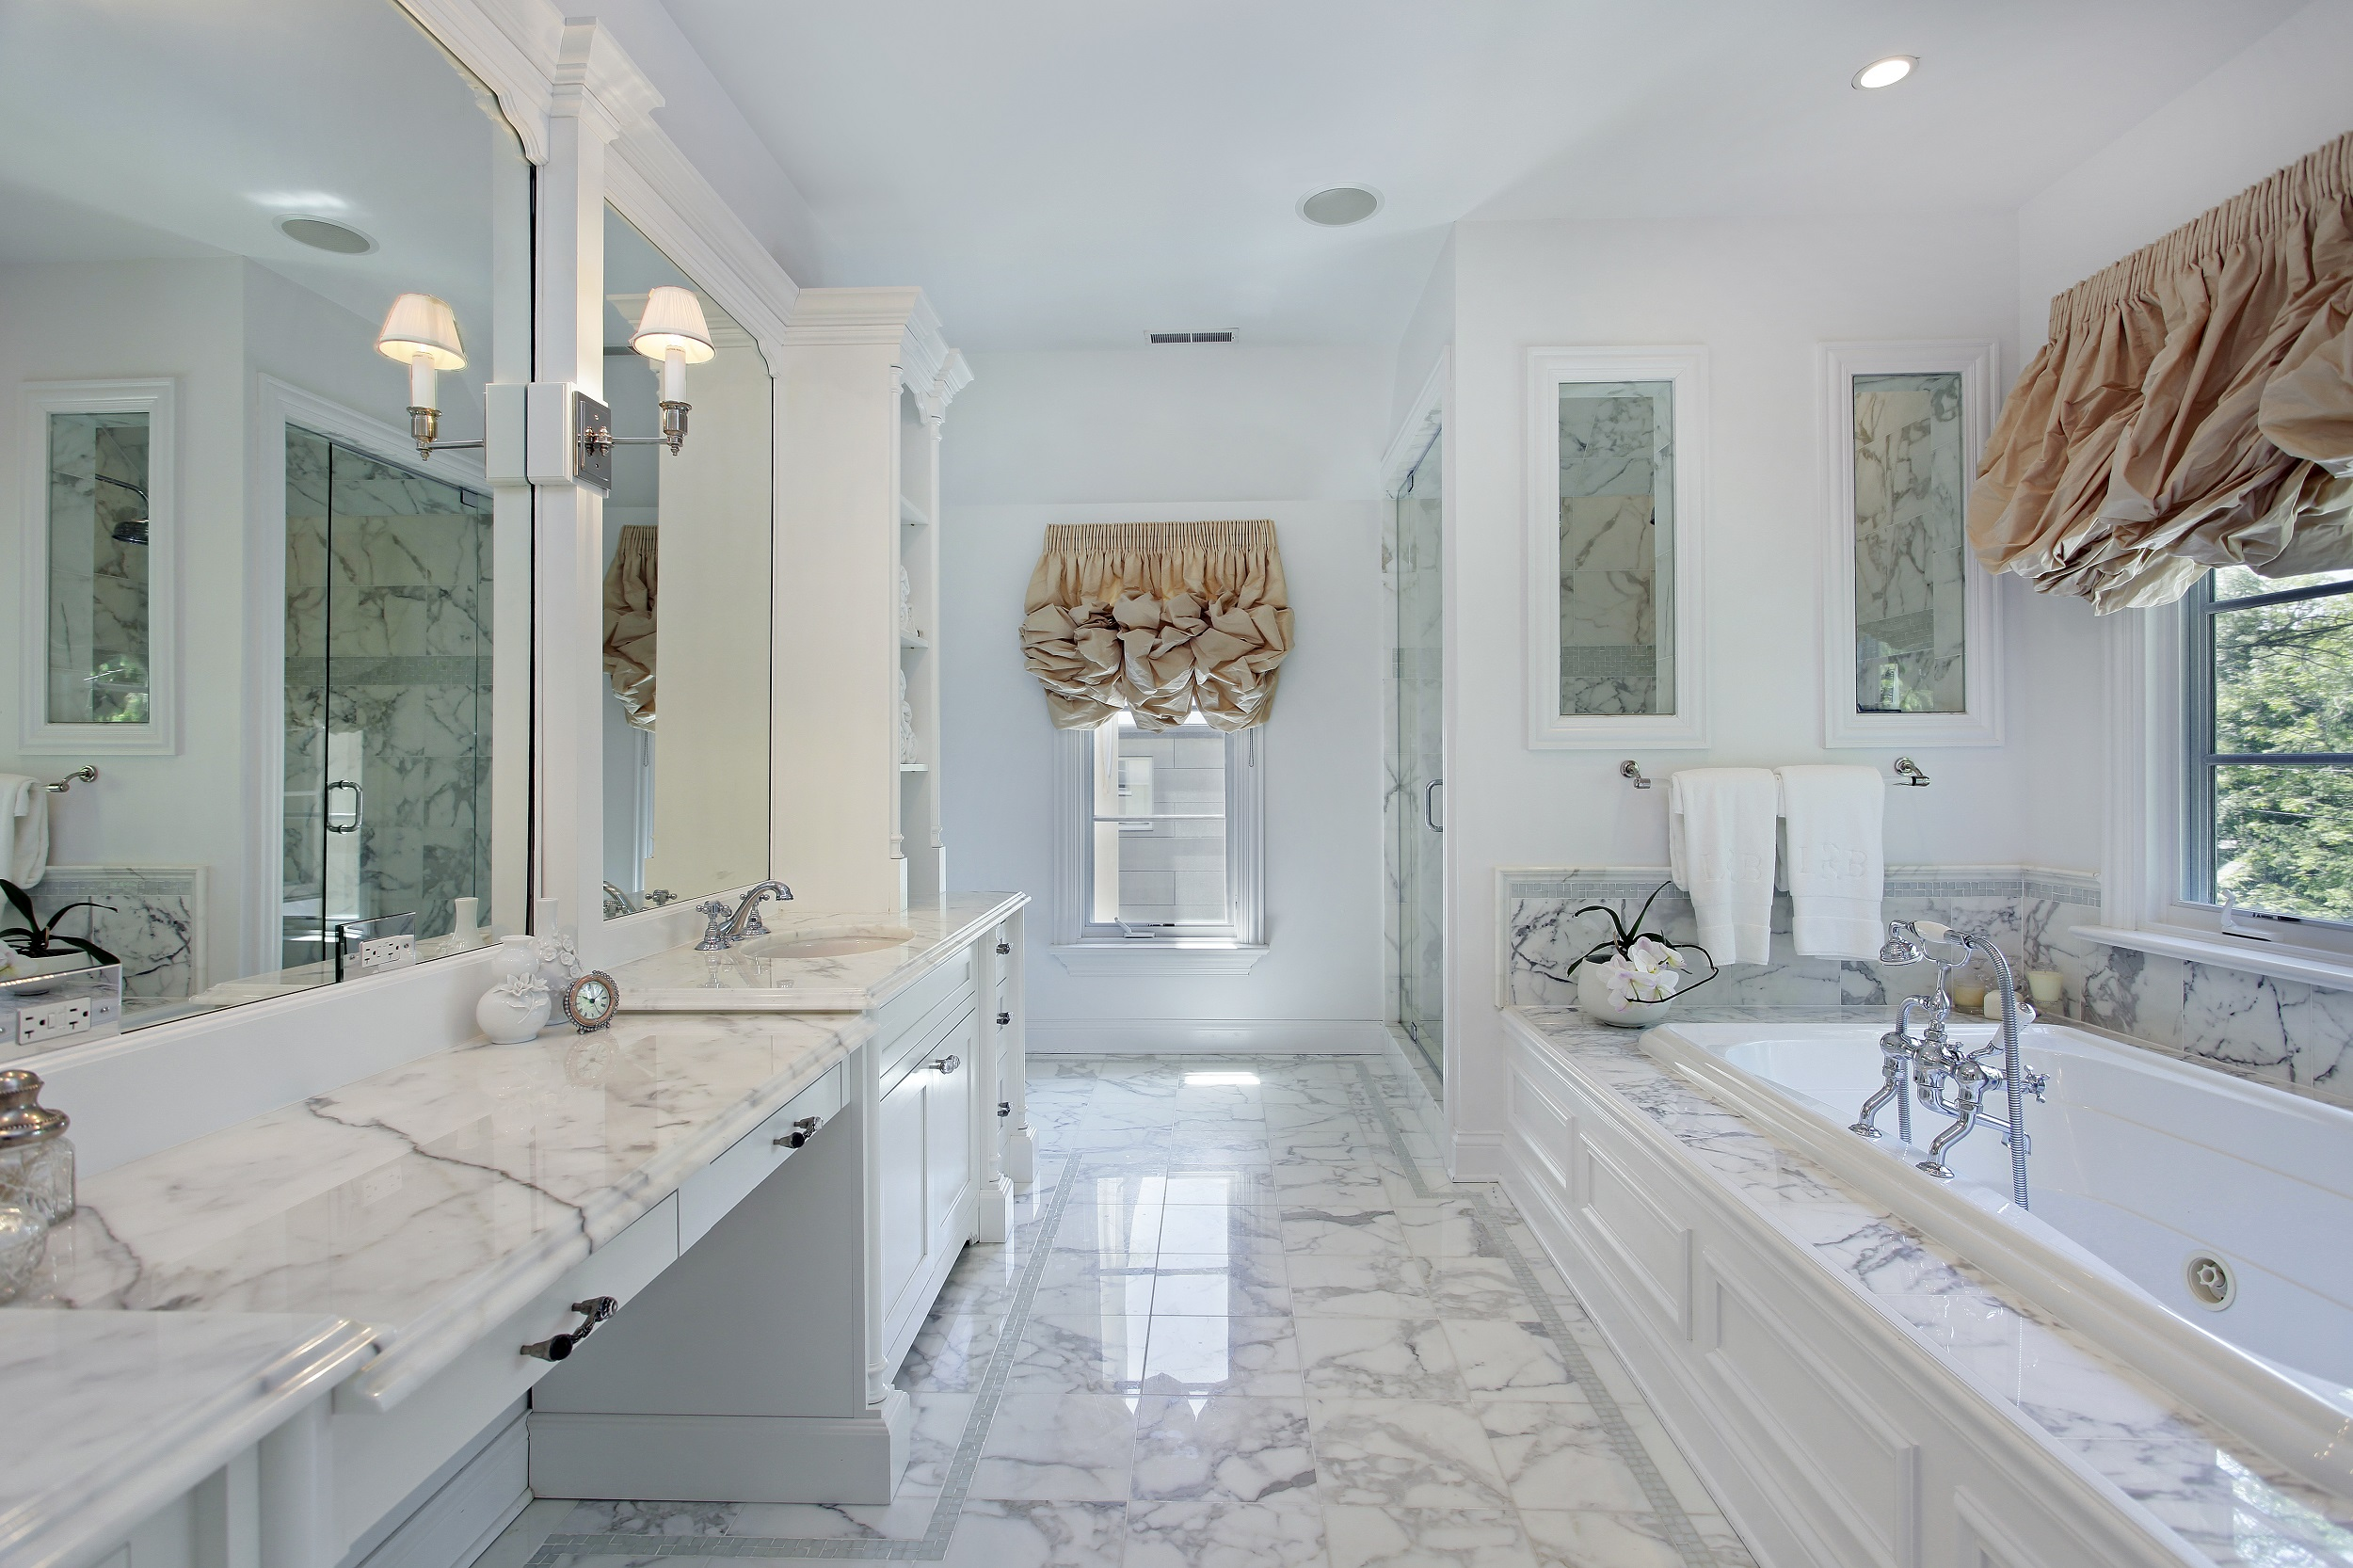 Bathroom Remodeling Contractor Near Me Yorktown Heights Ny Bathroom Design Build Services New York Remodeling Corp Nyrc Bathroom Kitchens Home Additions Roofing Siding Windows Doors